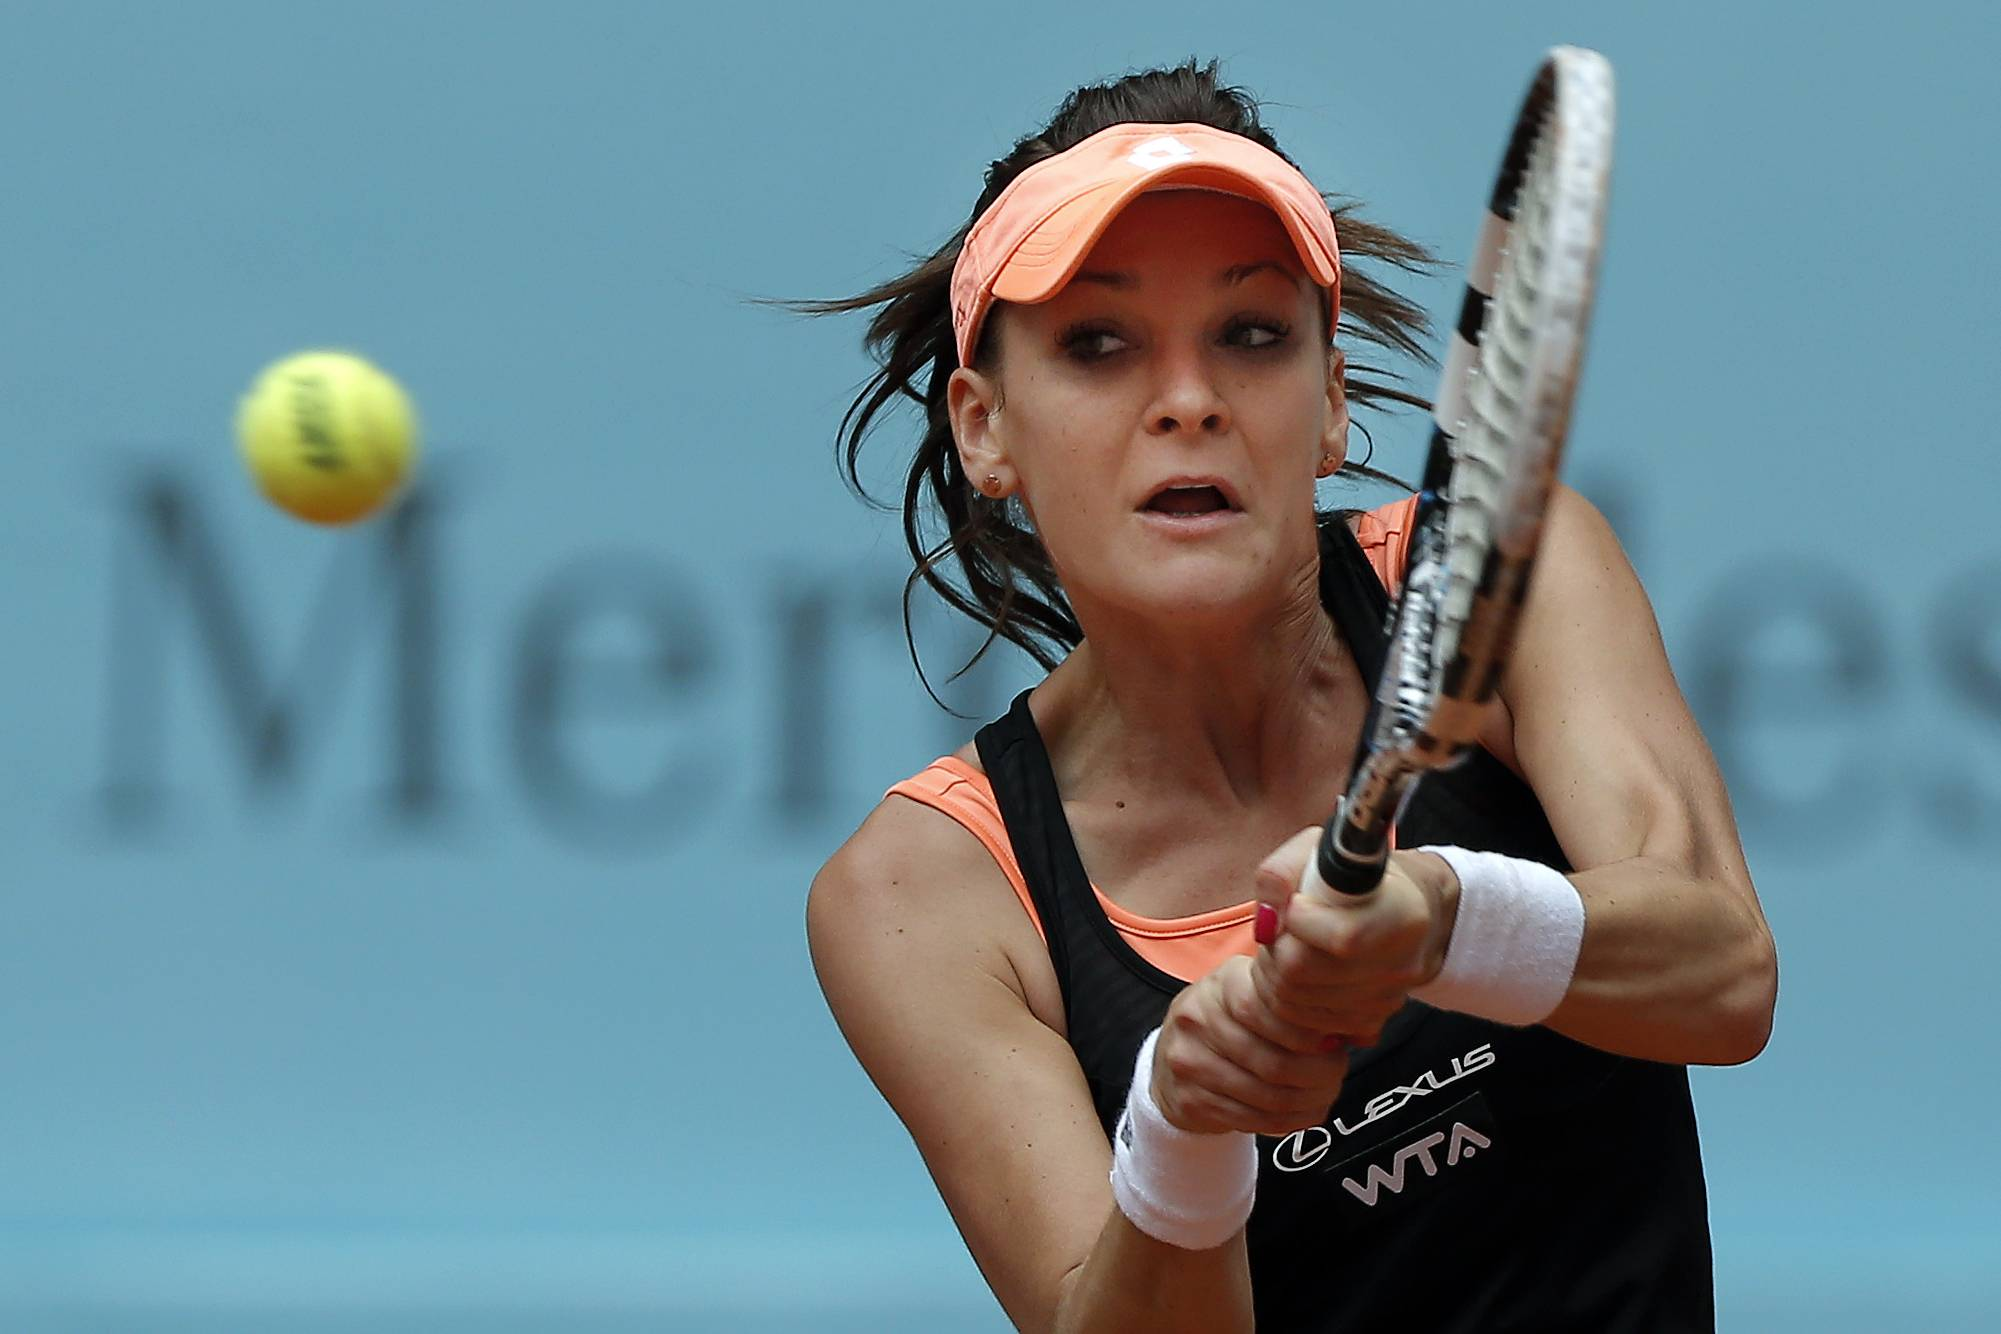 Agnieszka Radwanska from Poland returns the ball during a Madrid Open tennis tournament match against Svetlana Kuznetsova from Russia, in Madrid, Spain, Wednesday, May 7, 2014.